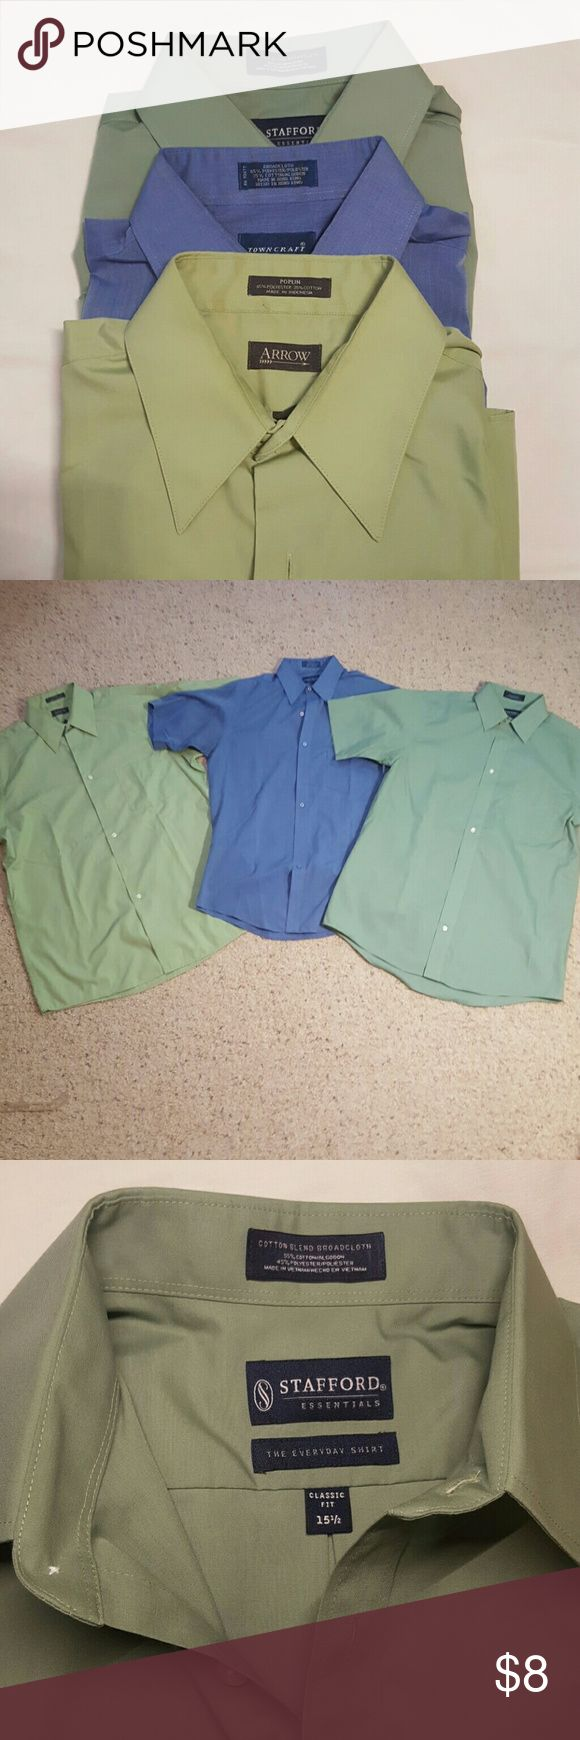 3 short sleeve men's dress shirts Get 3 short sleeved dress shirts for less than the price of one! Shirt # 1 is Arrow brand, light green, wrinkle free, medium, 15 1/2 collar. Shirt # 2 is Town Craft brand, medium blue, medium, 15 collar. Shirt # 3 is Stafford brand, green, 15 1/2 collar. All 3 shirts have been worn and show slight signs of wear inside the collar but nothing major. They have lots of life left in them. Please ask if you have any questions. Arrow Shirts Dress Shirts